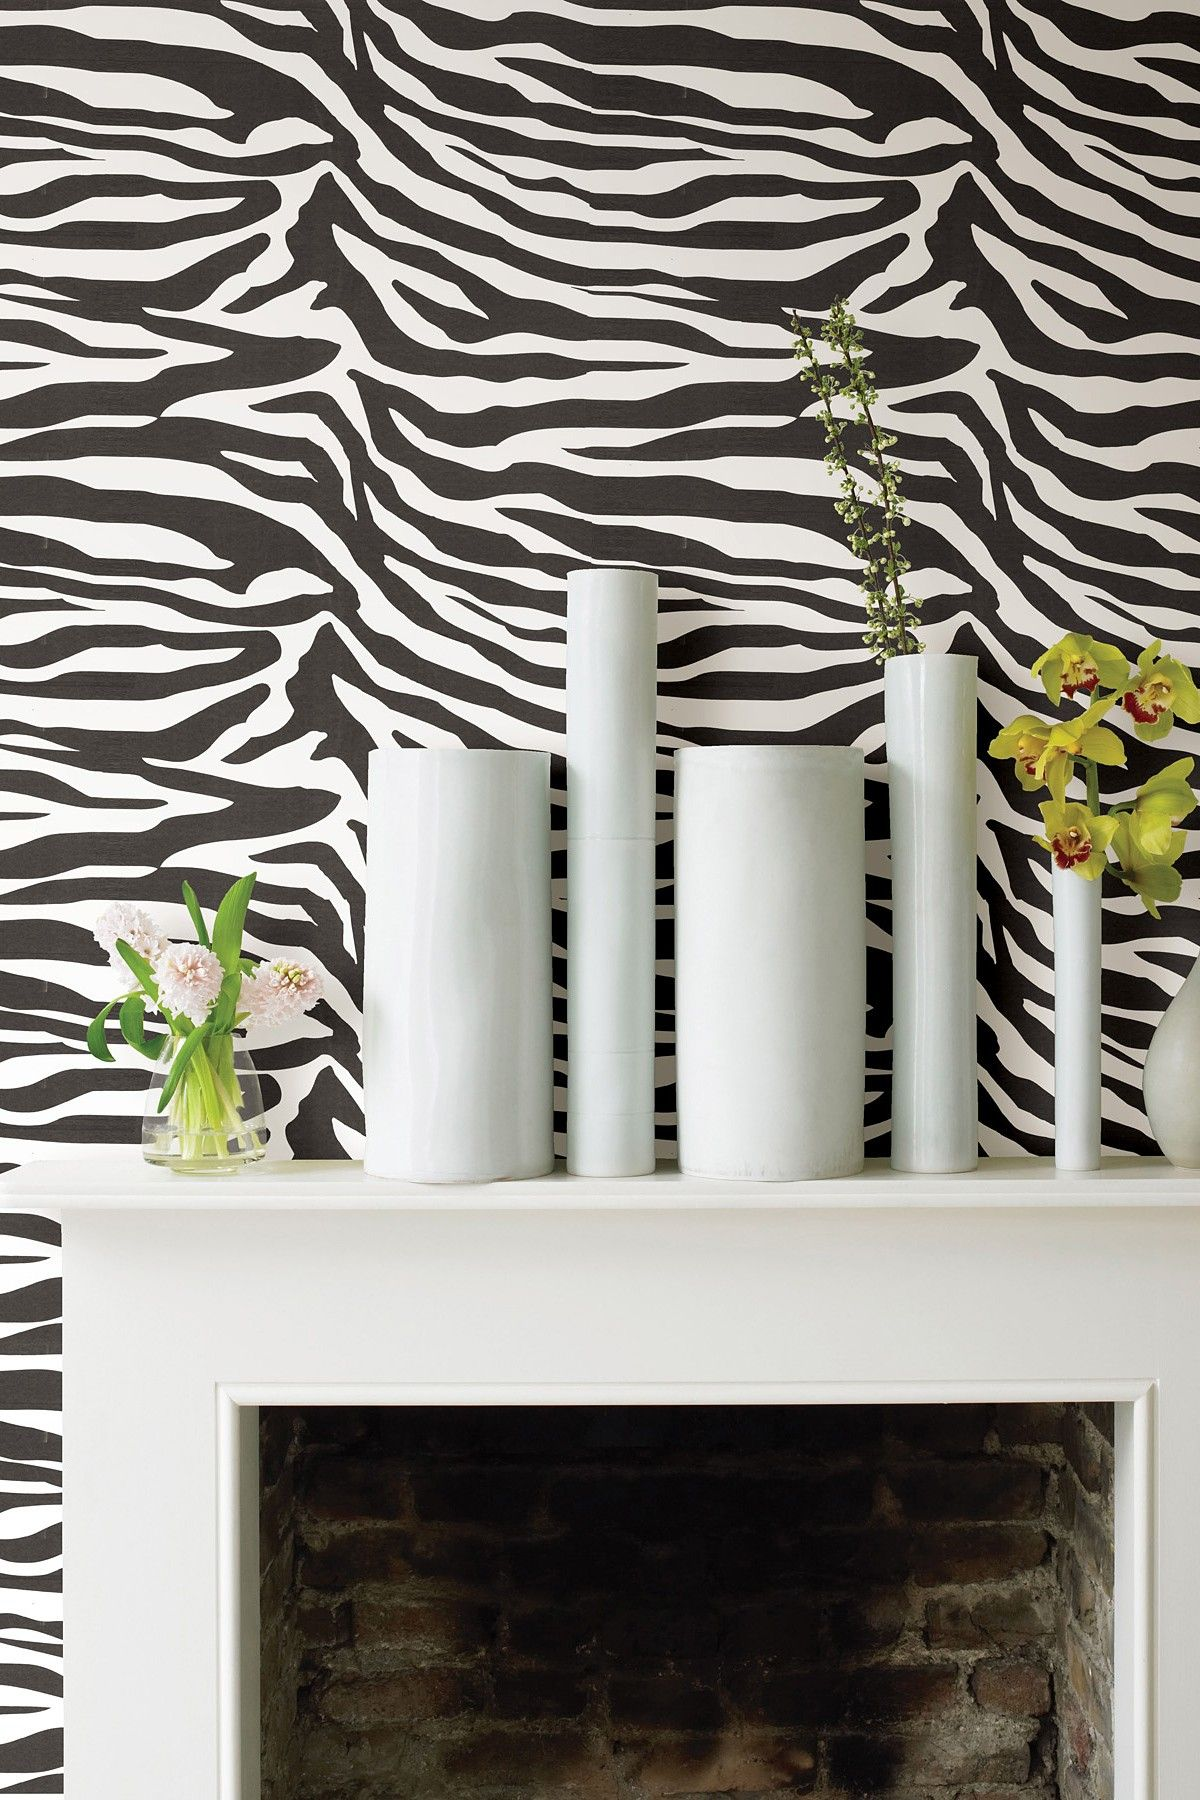 Zebbie White Zebra Print Wallpaper By WallPops! On @HauteLook